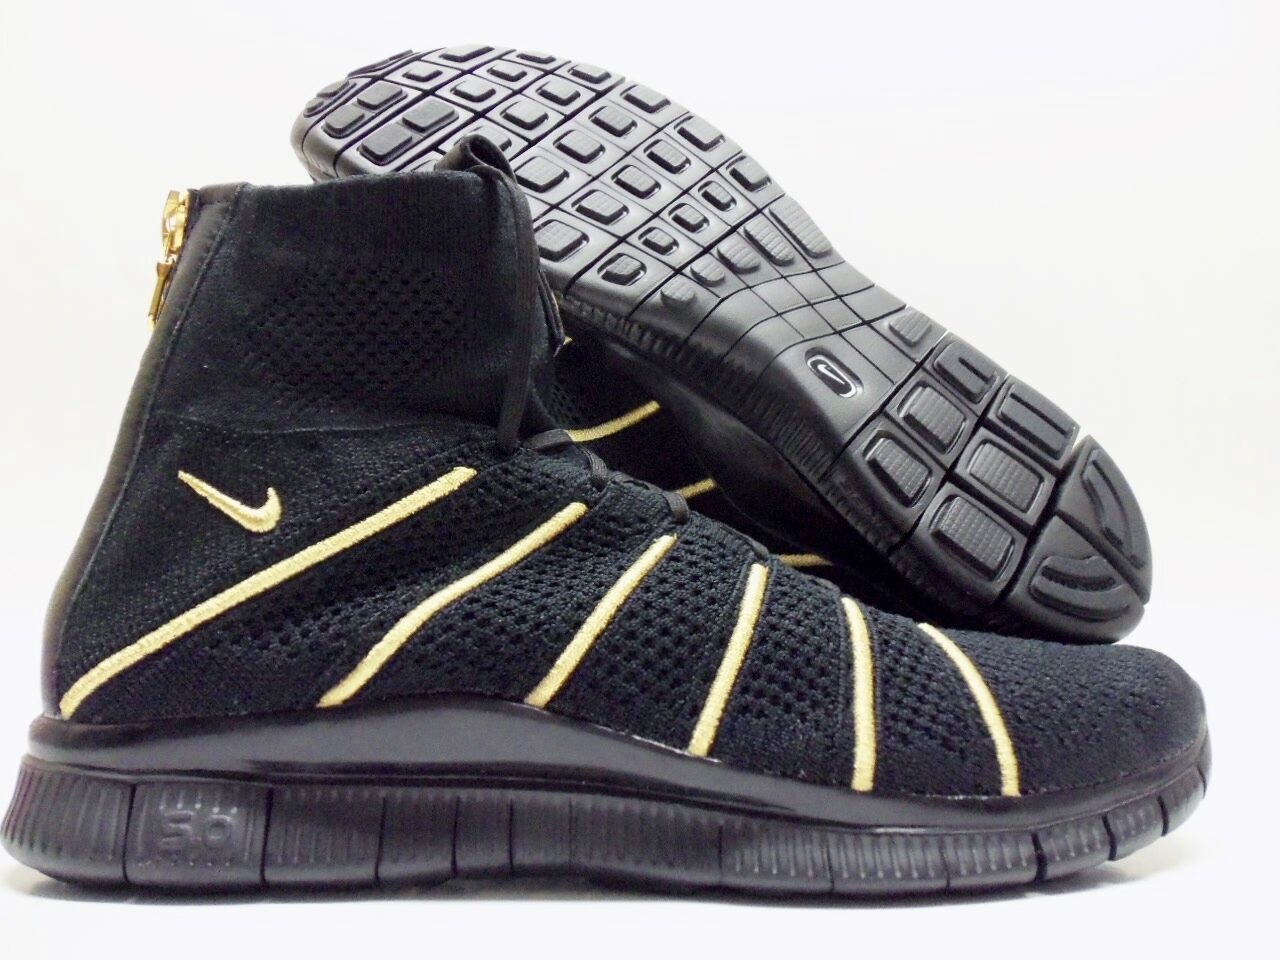 NIKE FREE FK MERCURIAL OR OLIVIER ROUSTEING BLACK/GOLD SZ MEN'S 9.5 [834906-007]